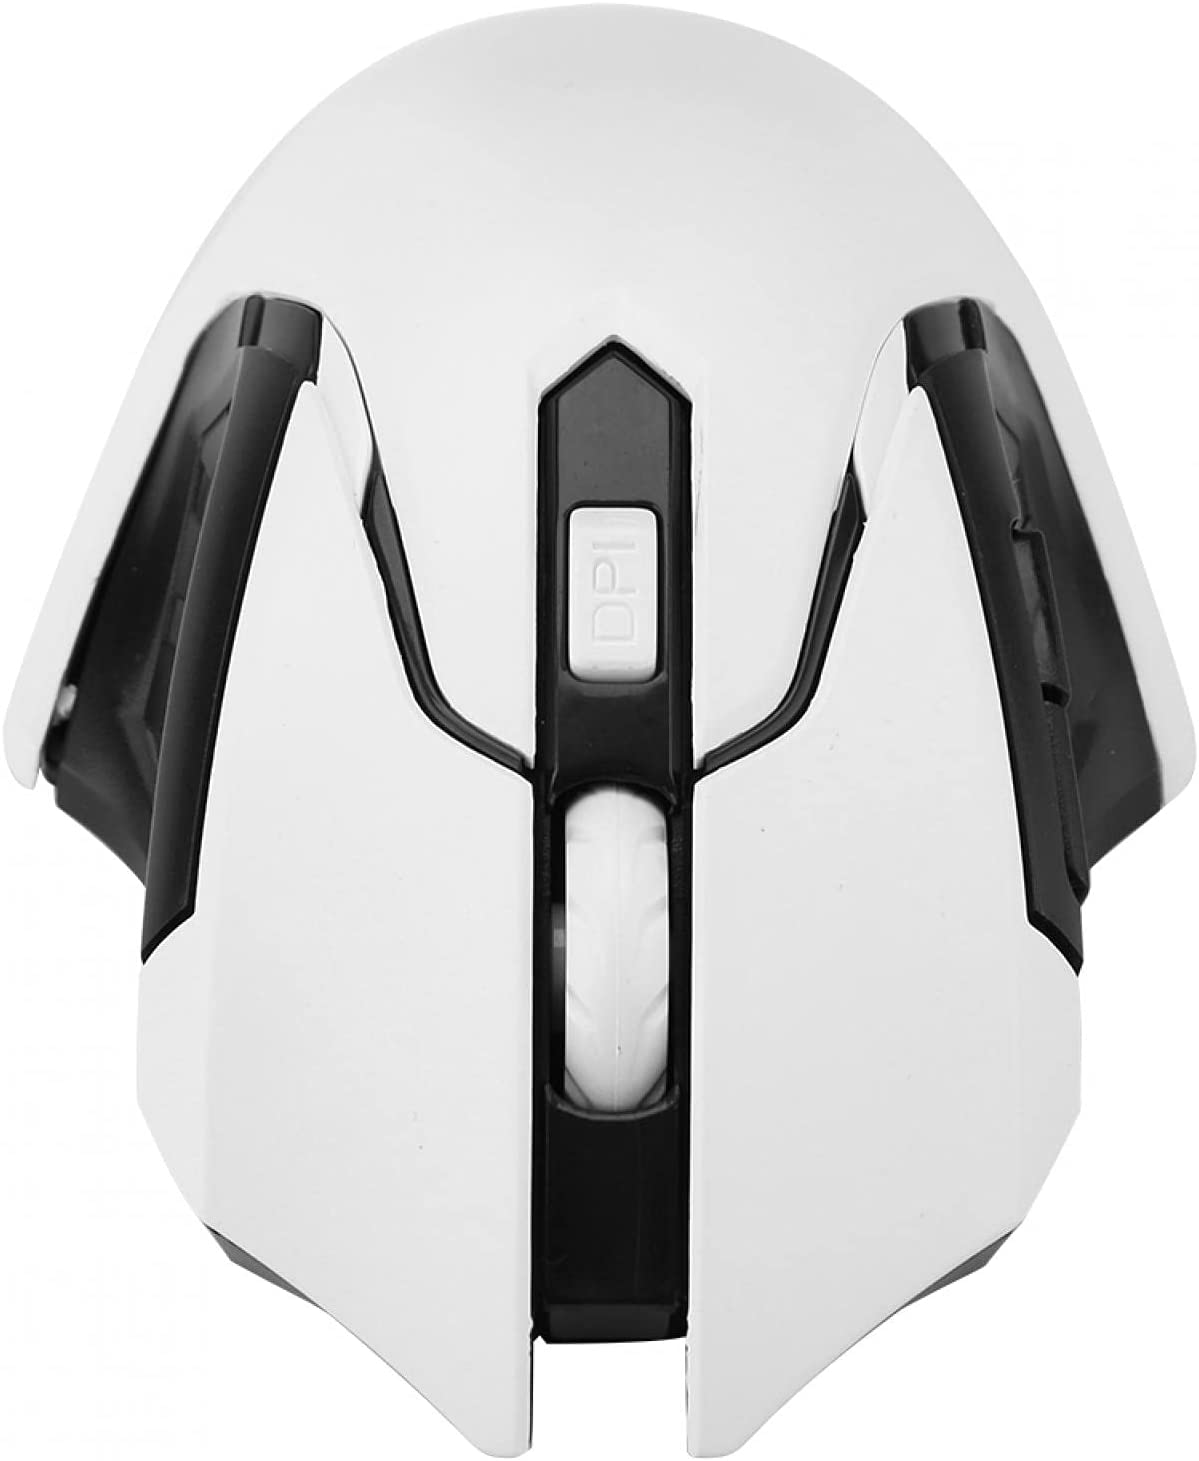 No Delay Wireless Mouse Ranking TOP2 M Gaming 1200DPI Year-end gift Computer